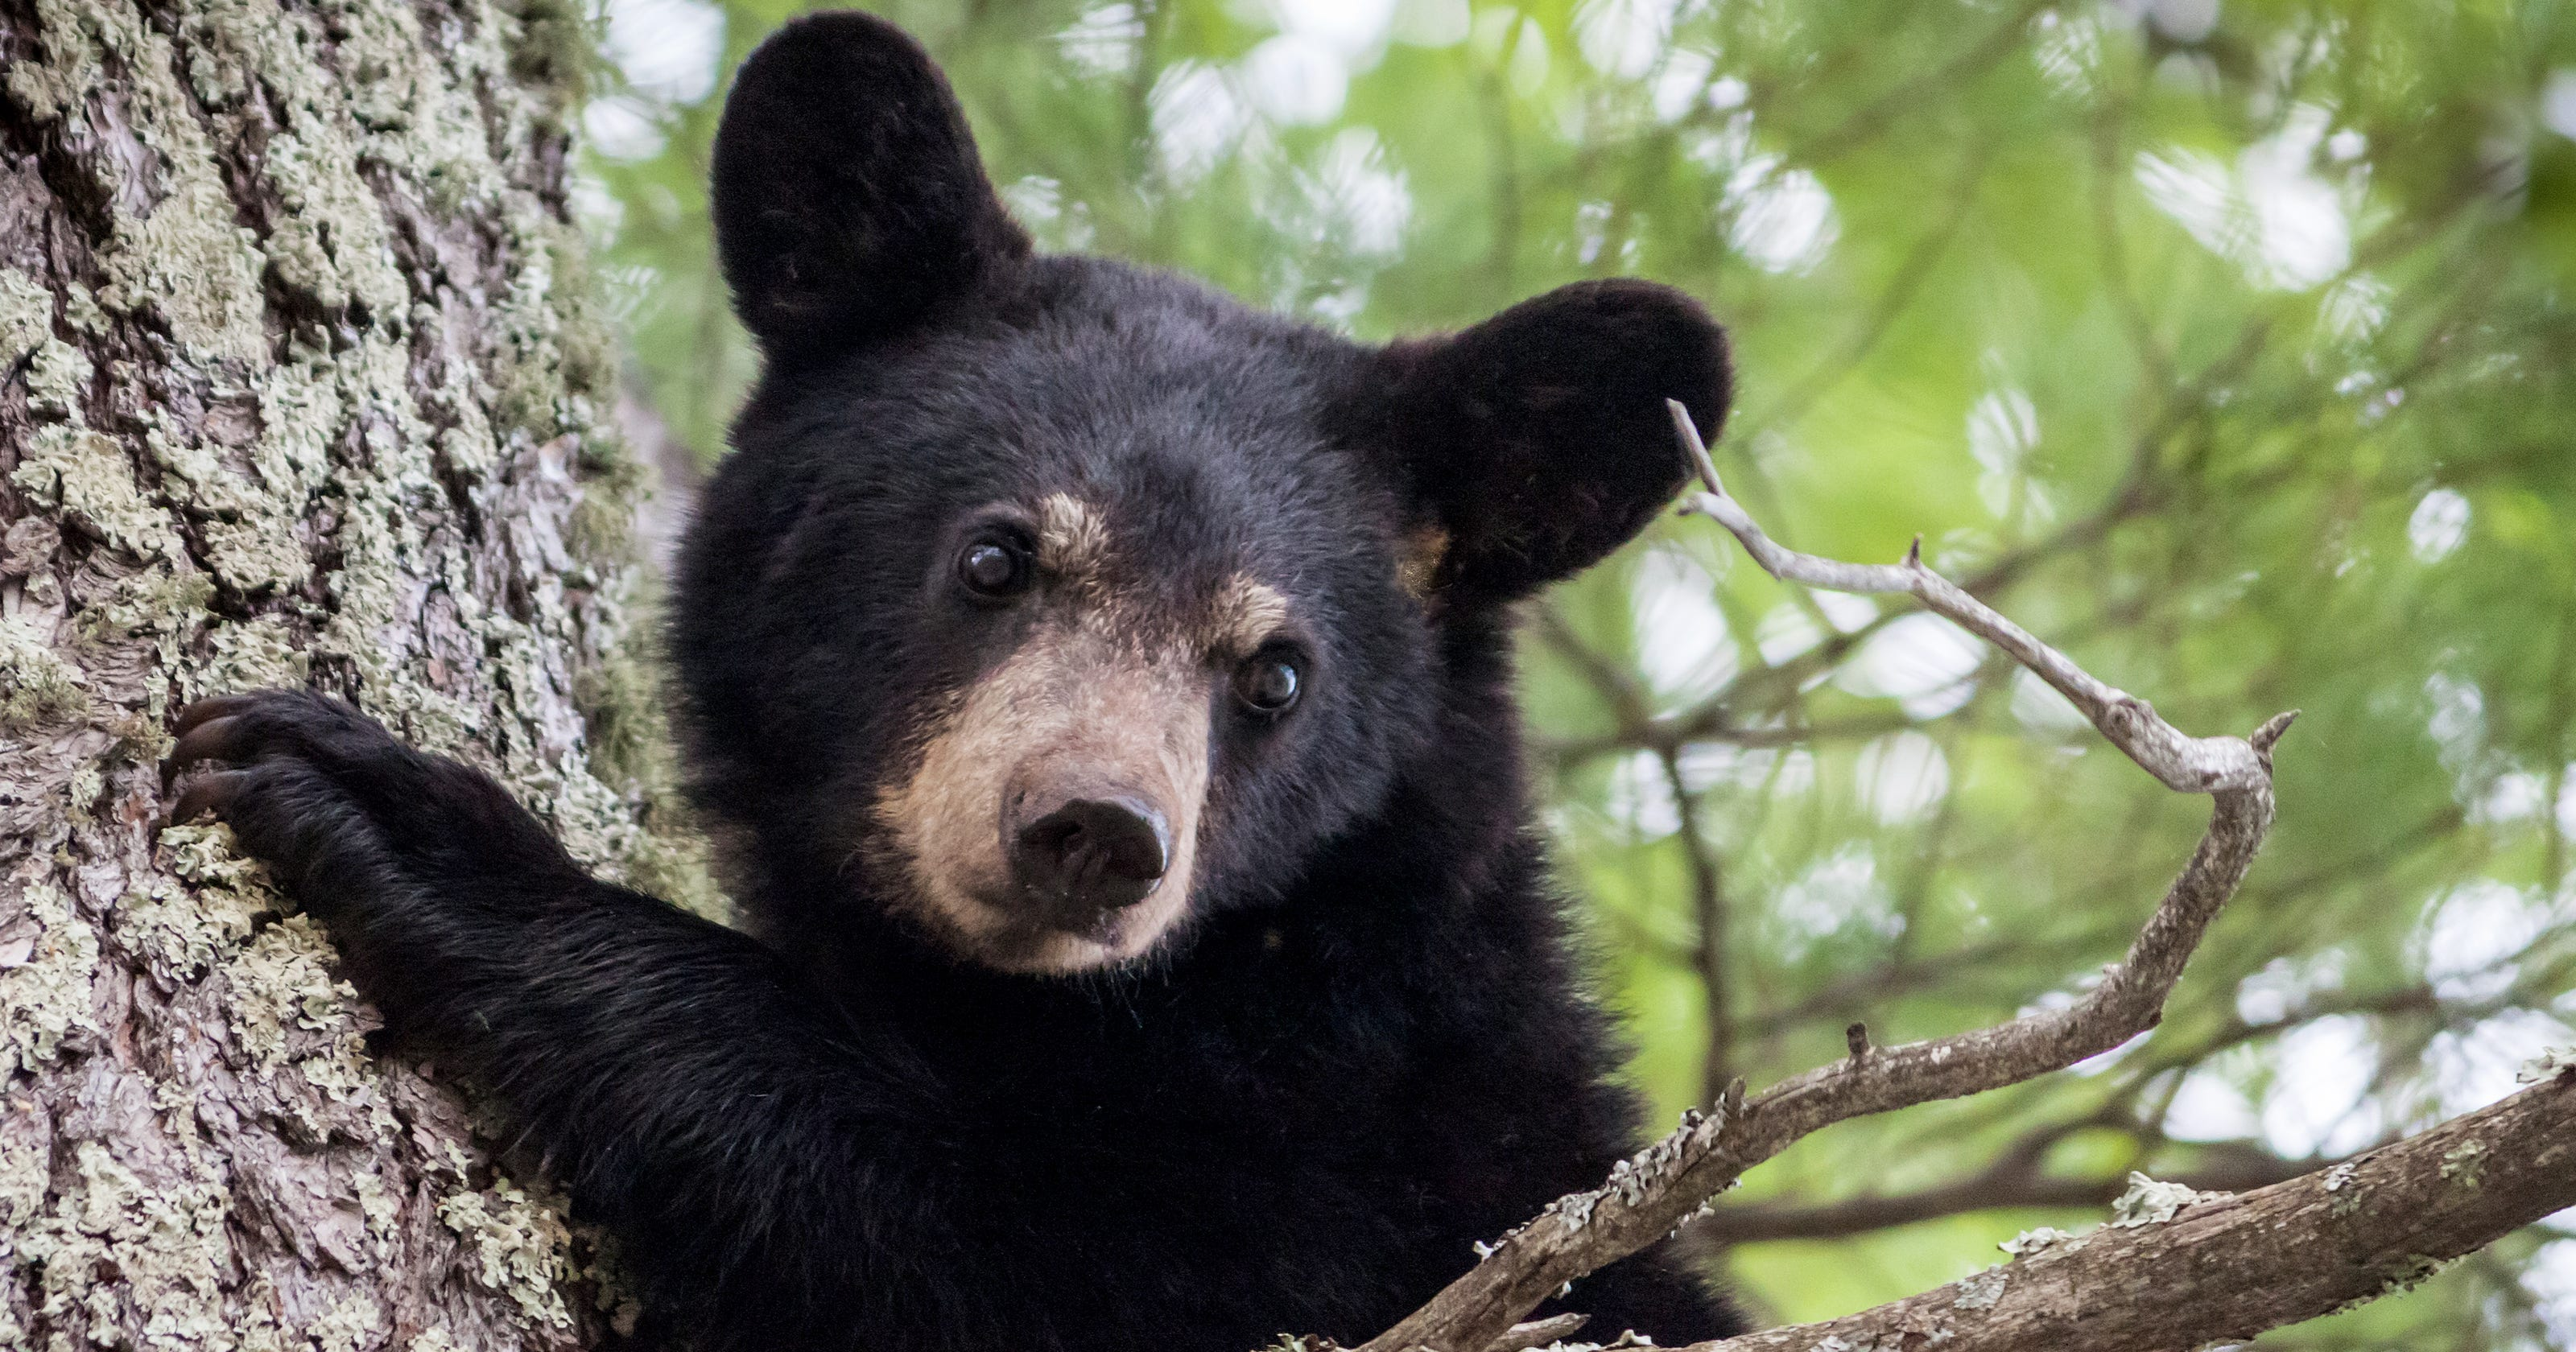 Southern Tier Black Bear Population Booming